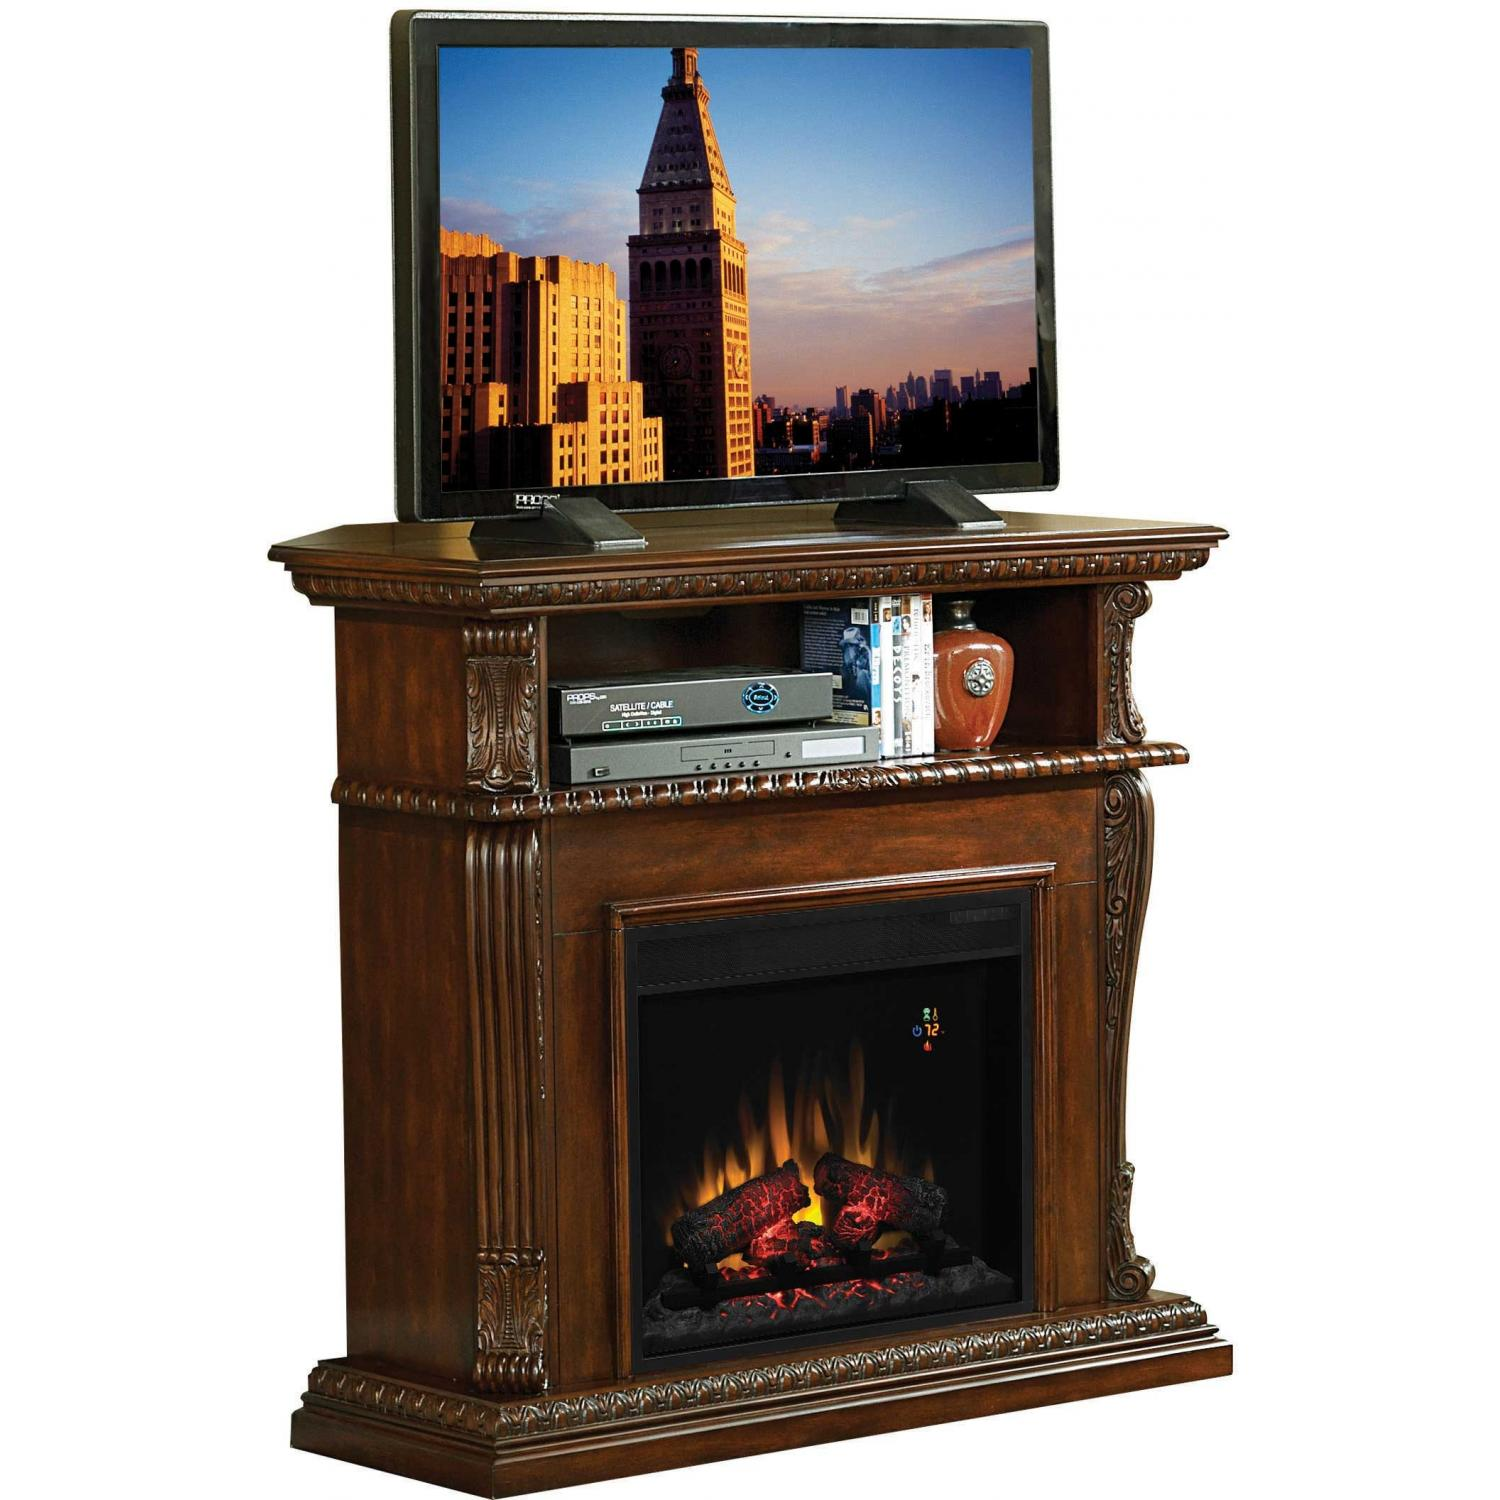 ClassicFlame 23DE1447-C233 Advantage Corinth Dual Use Electric Fireplace - Vintage Cherry